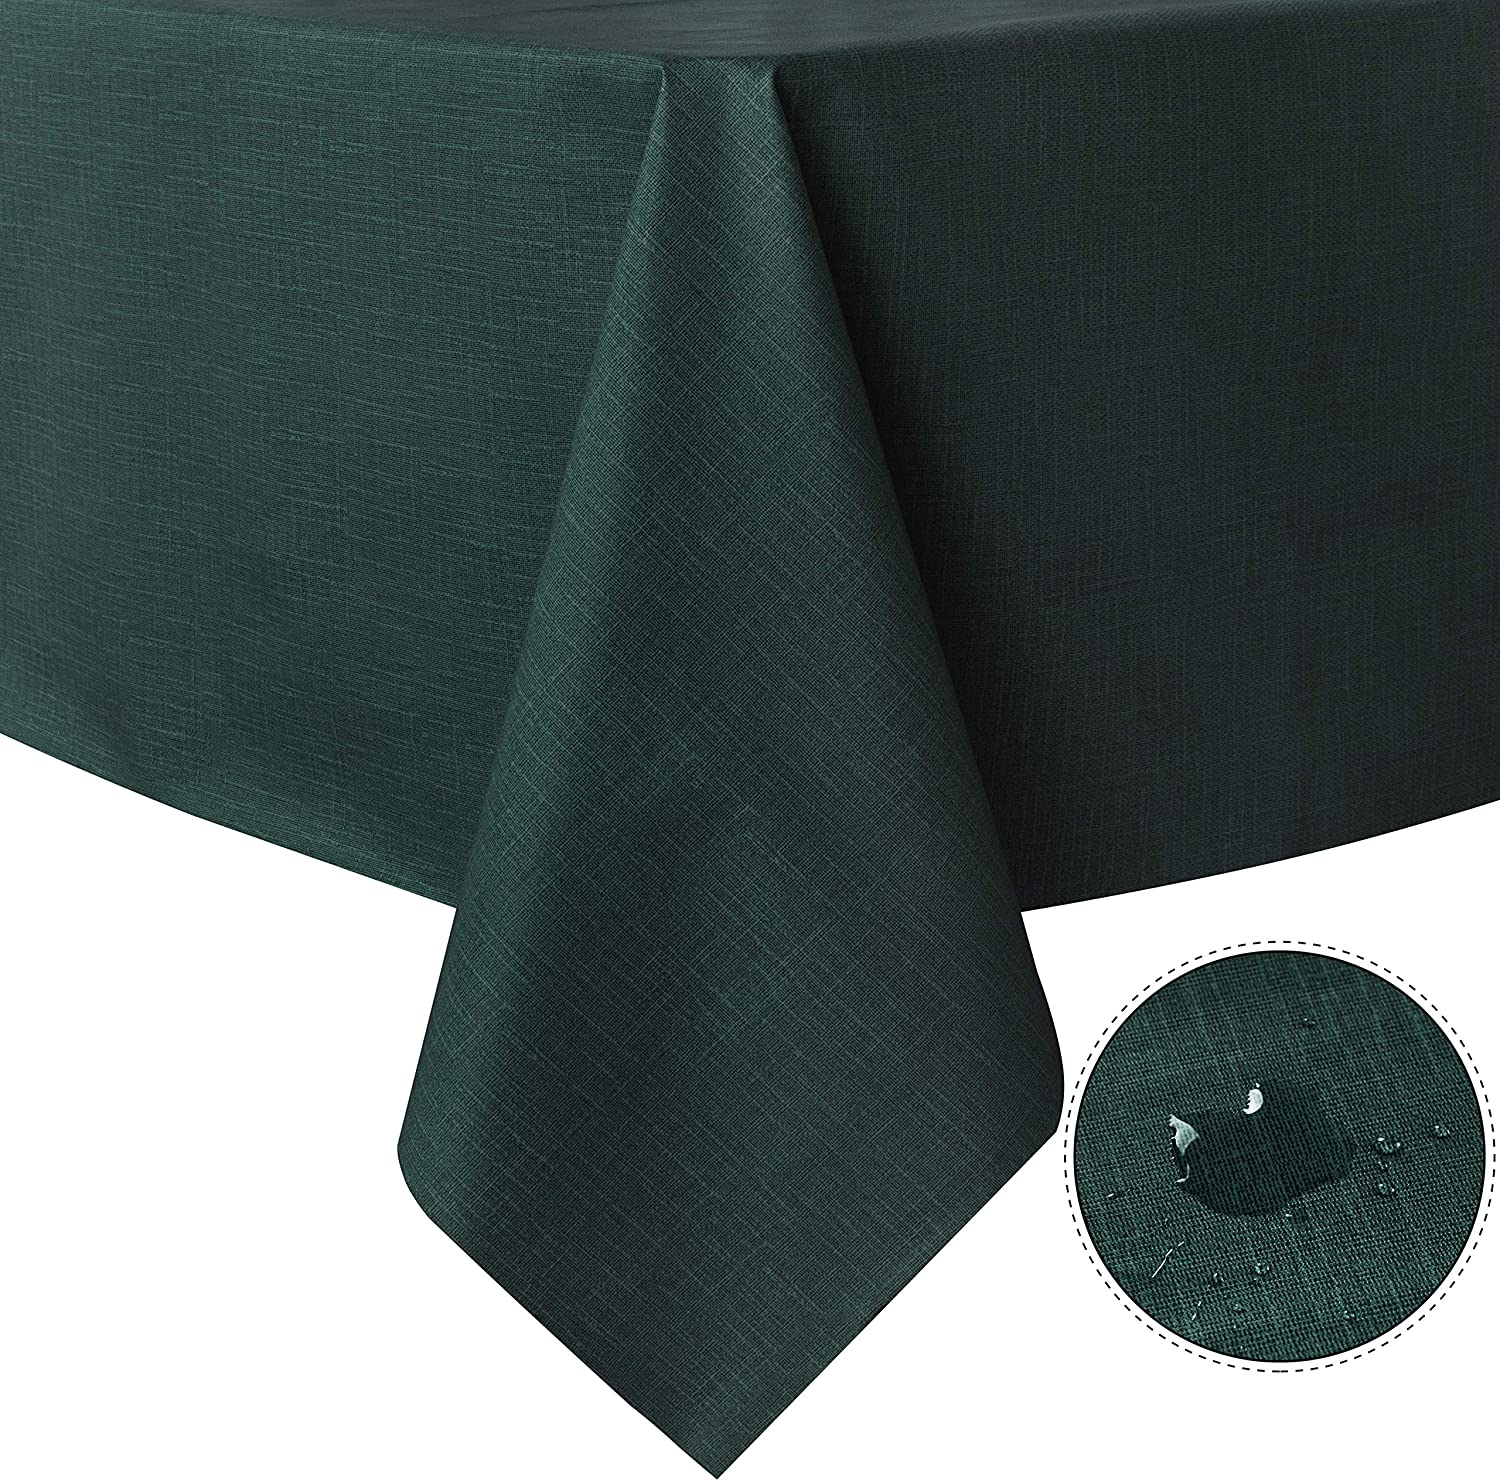 sancua 100/% Waterproof Rectangle PVC Tablecloth Buffet Parties and Camping Wipe Clean Table Cover for Table 52 x 70 inch Black Oil-Proof and Spill-Proof Vinyl Table Cloth